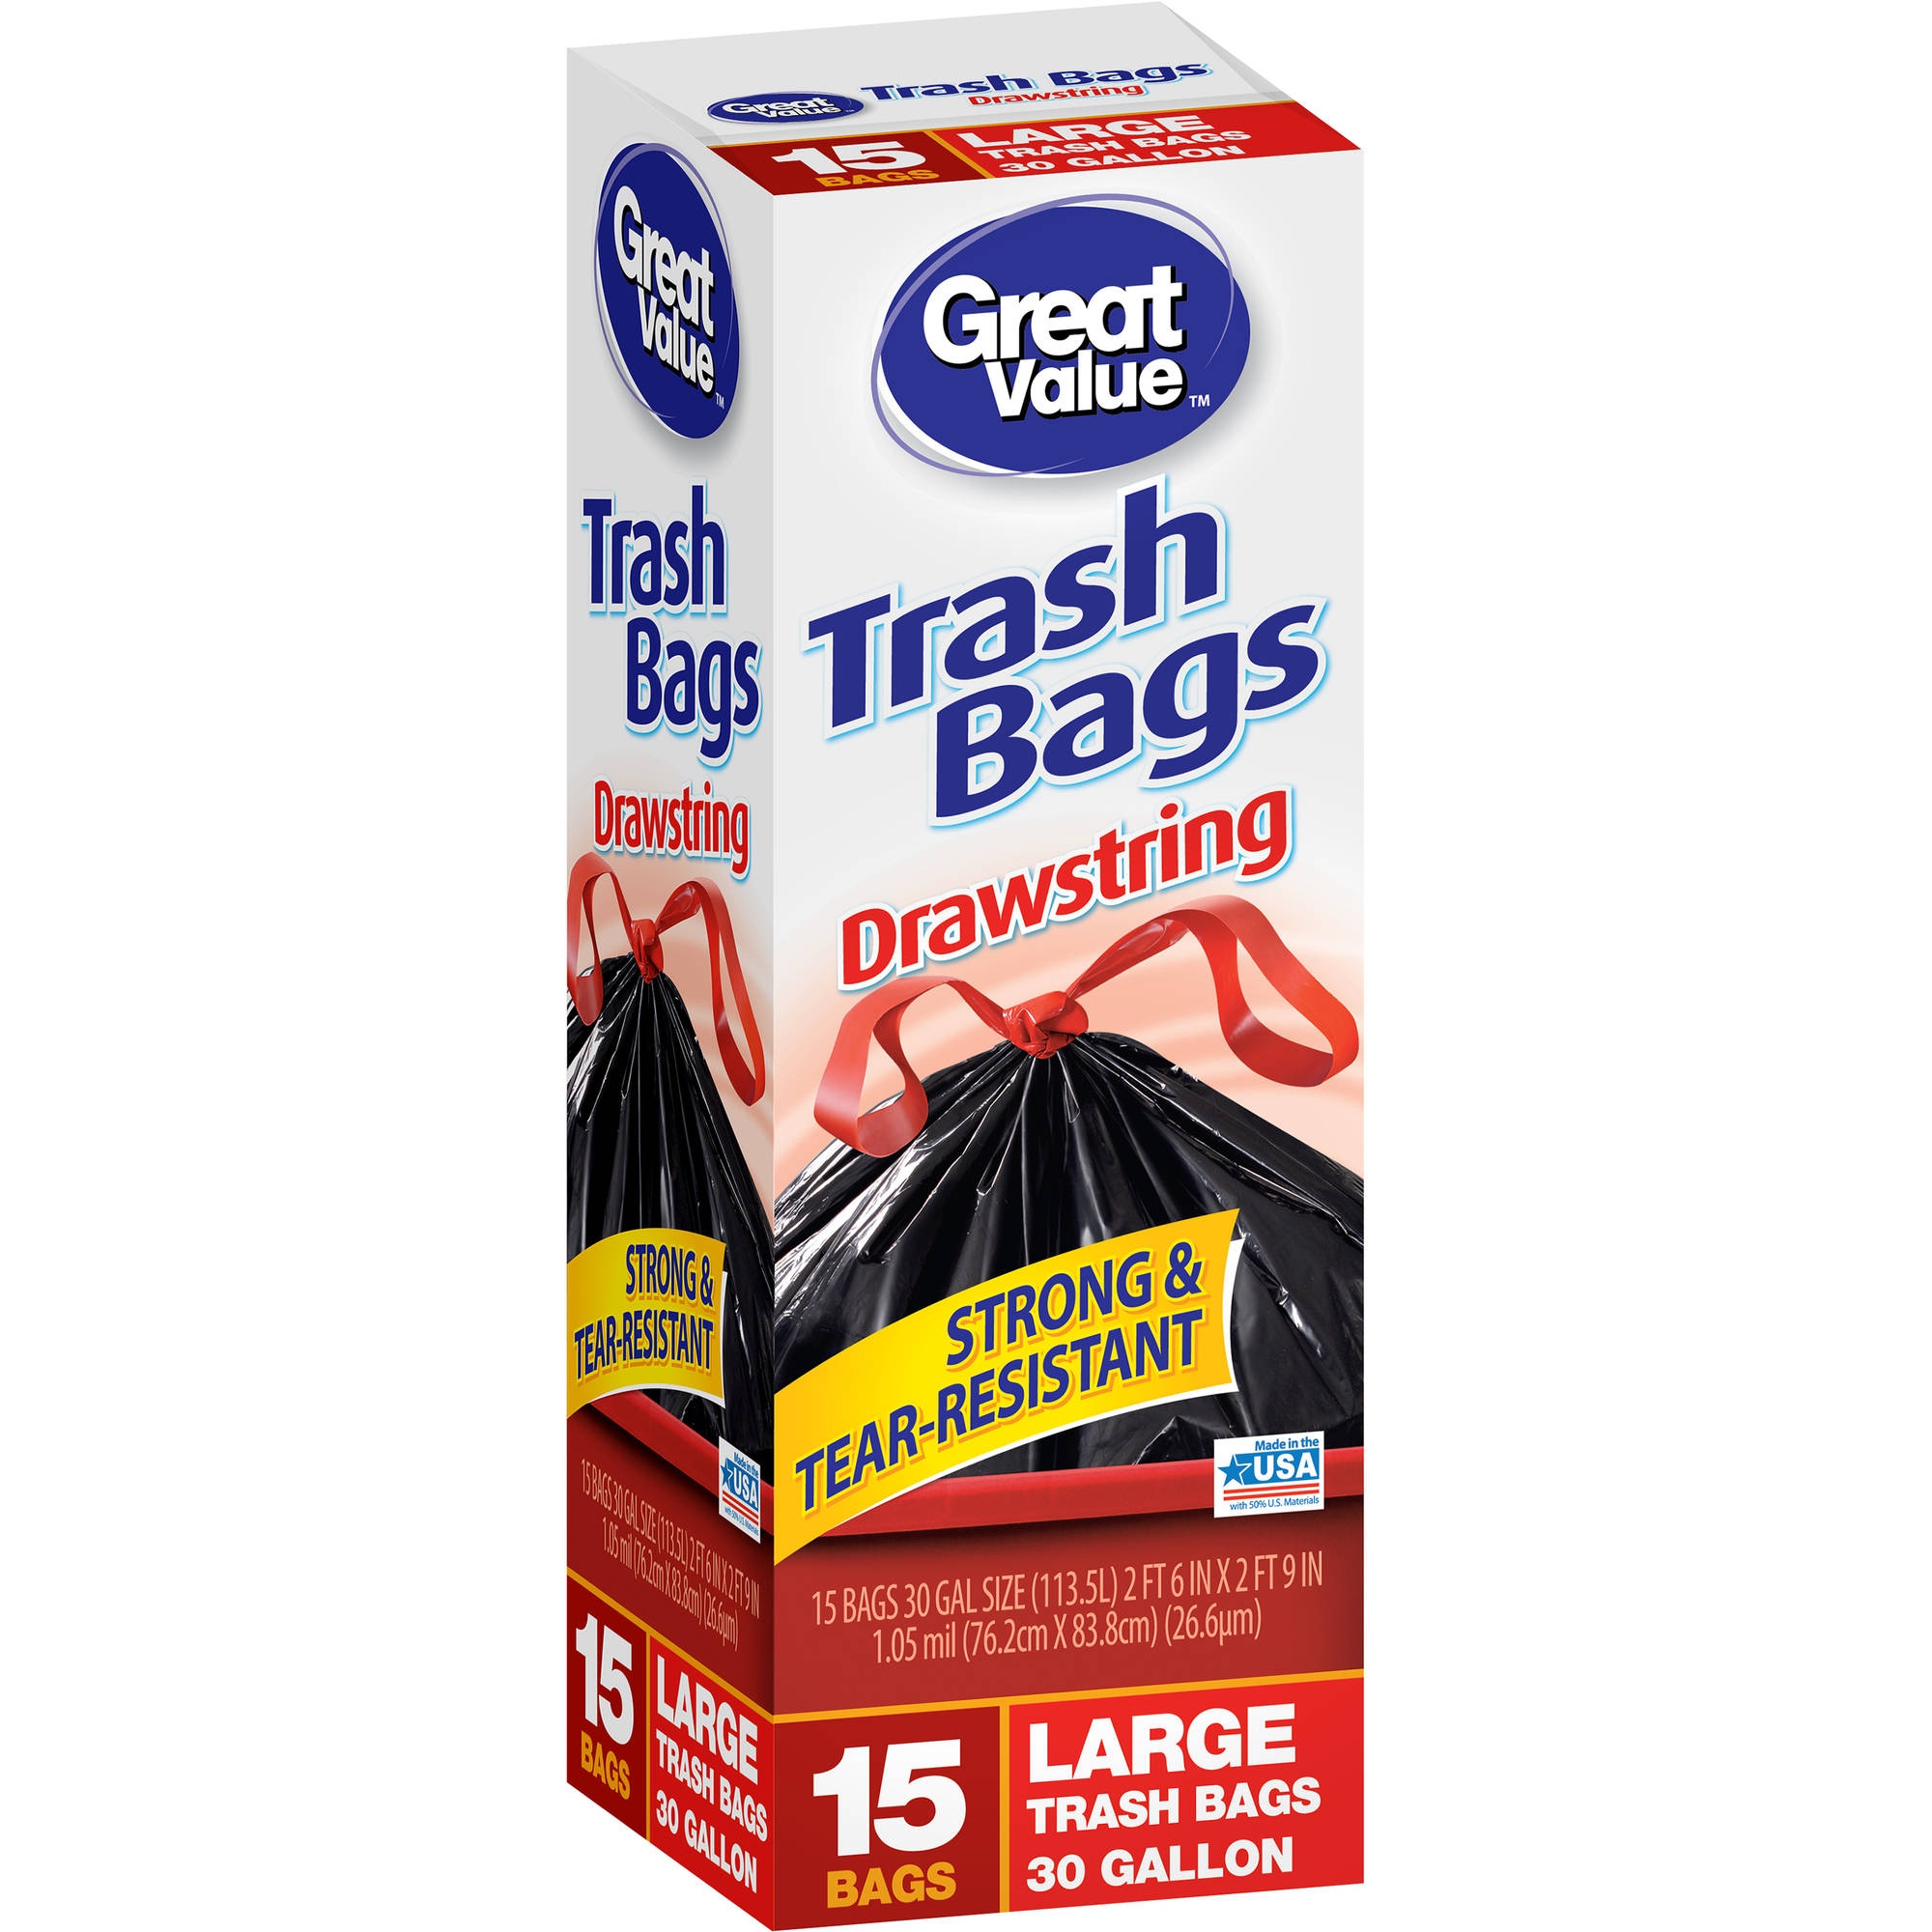 Great Value Drawstring Trash Bags, 13gal, 15 count